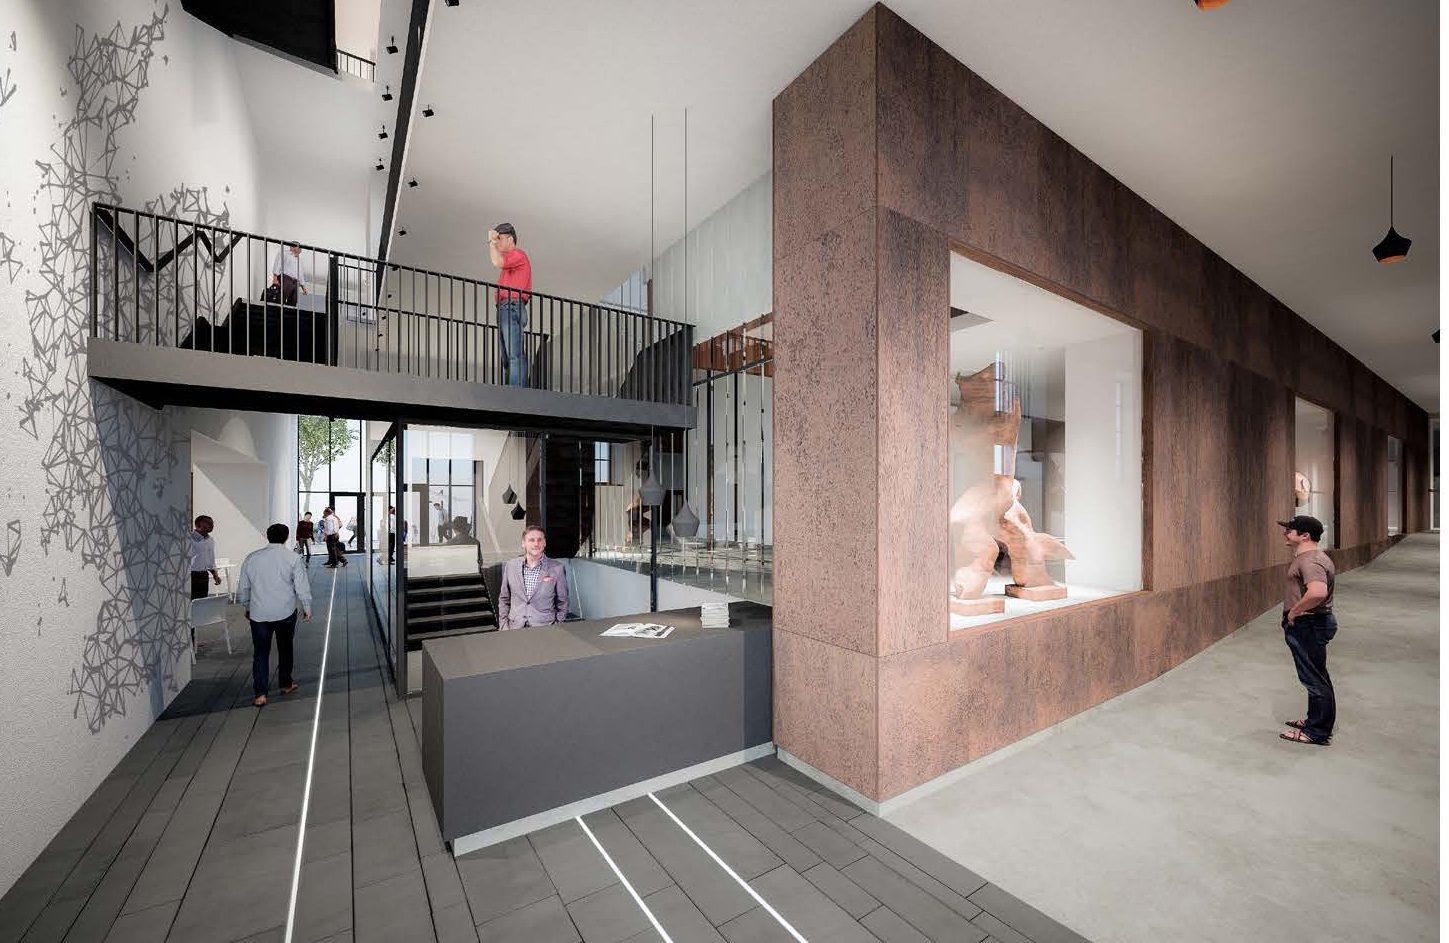 An illustration of plans for the interior of Perth City Hall by architects Mecanoo.